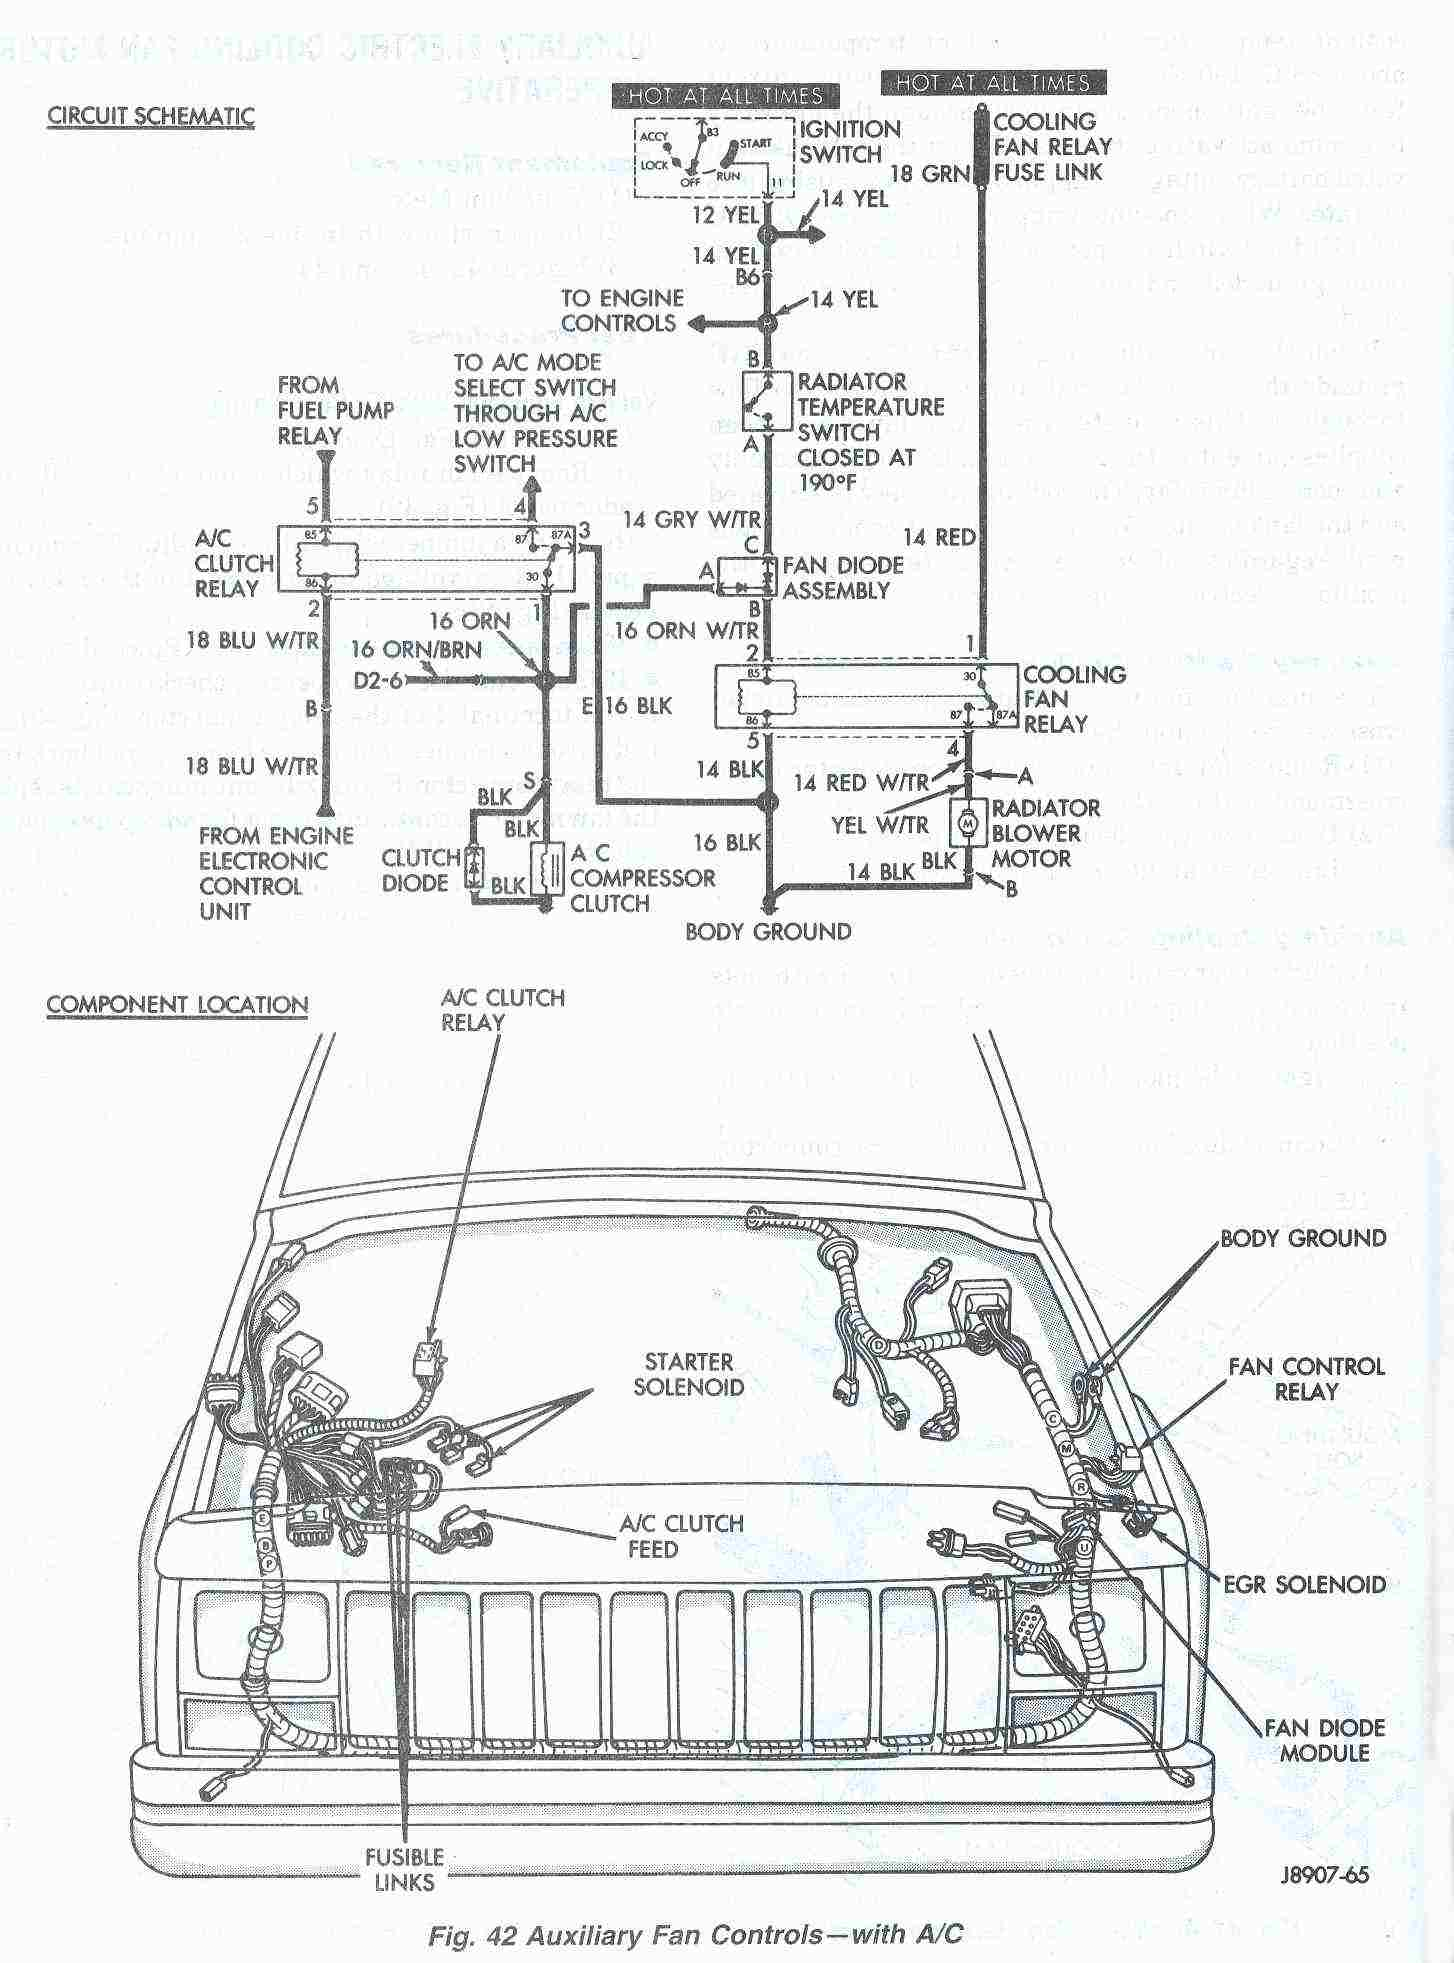 Air Fan Clutch Wiring Diagram Library Electrical Relay On Electric Reveolution Of U2022 Rh Jivehype Co Test Procedures For Vehicle Equipped With Conditioning